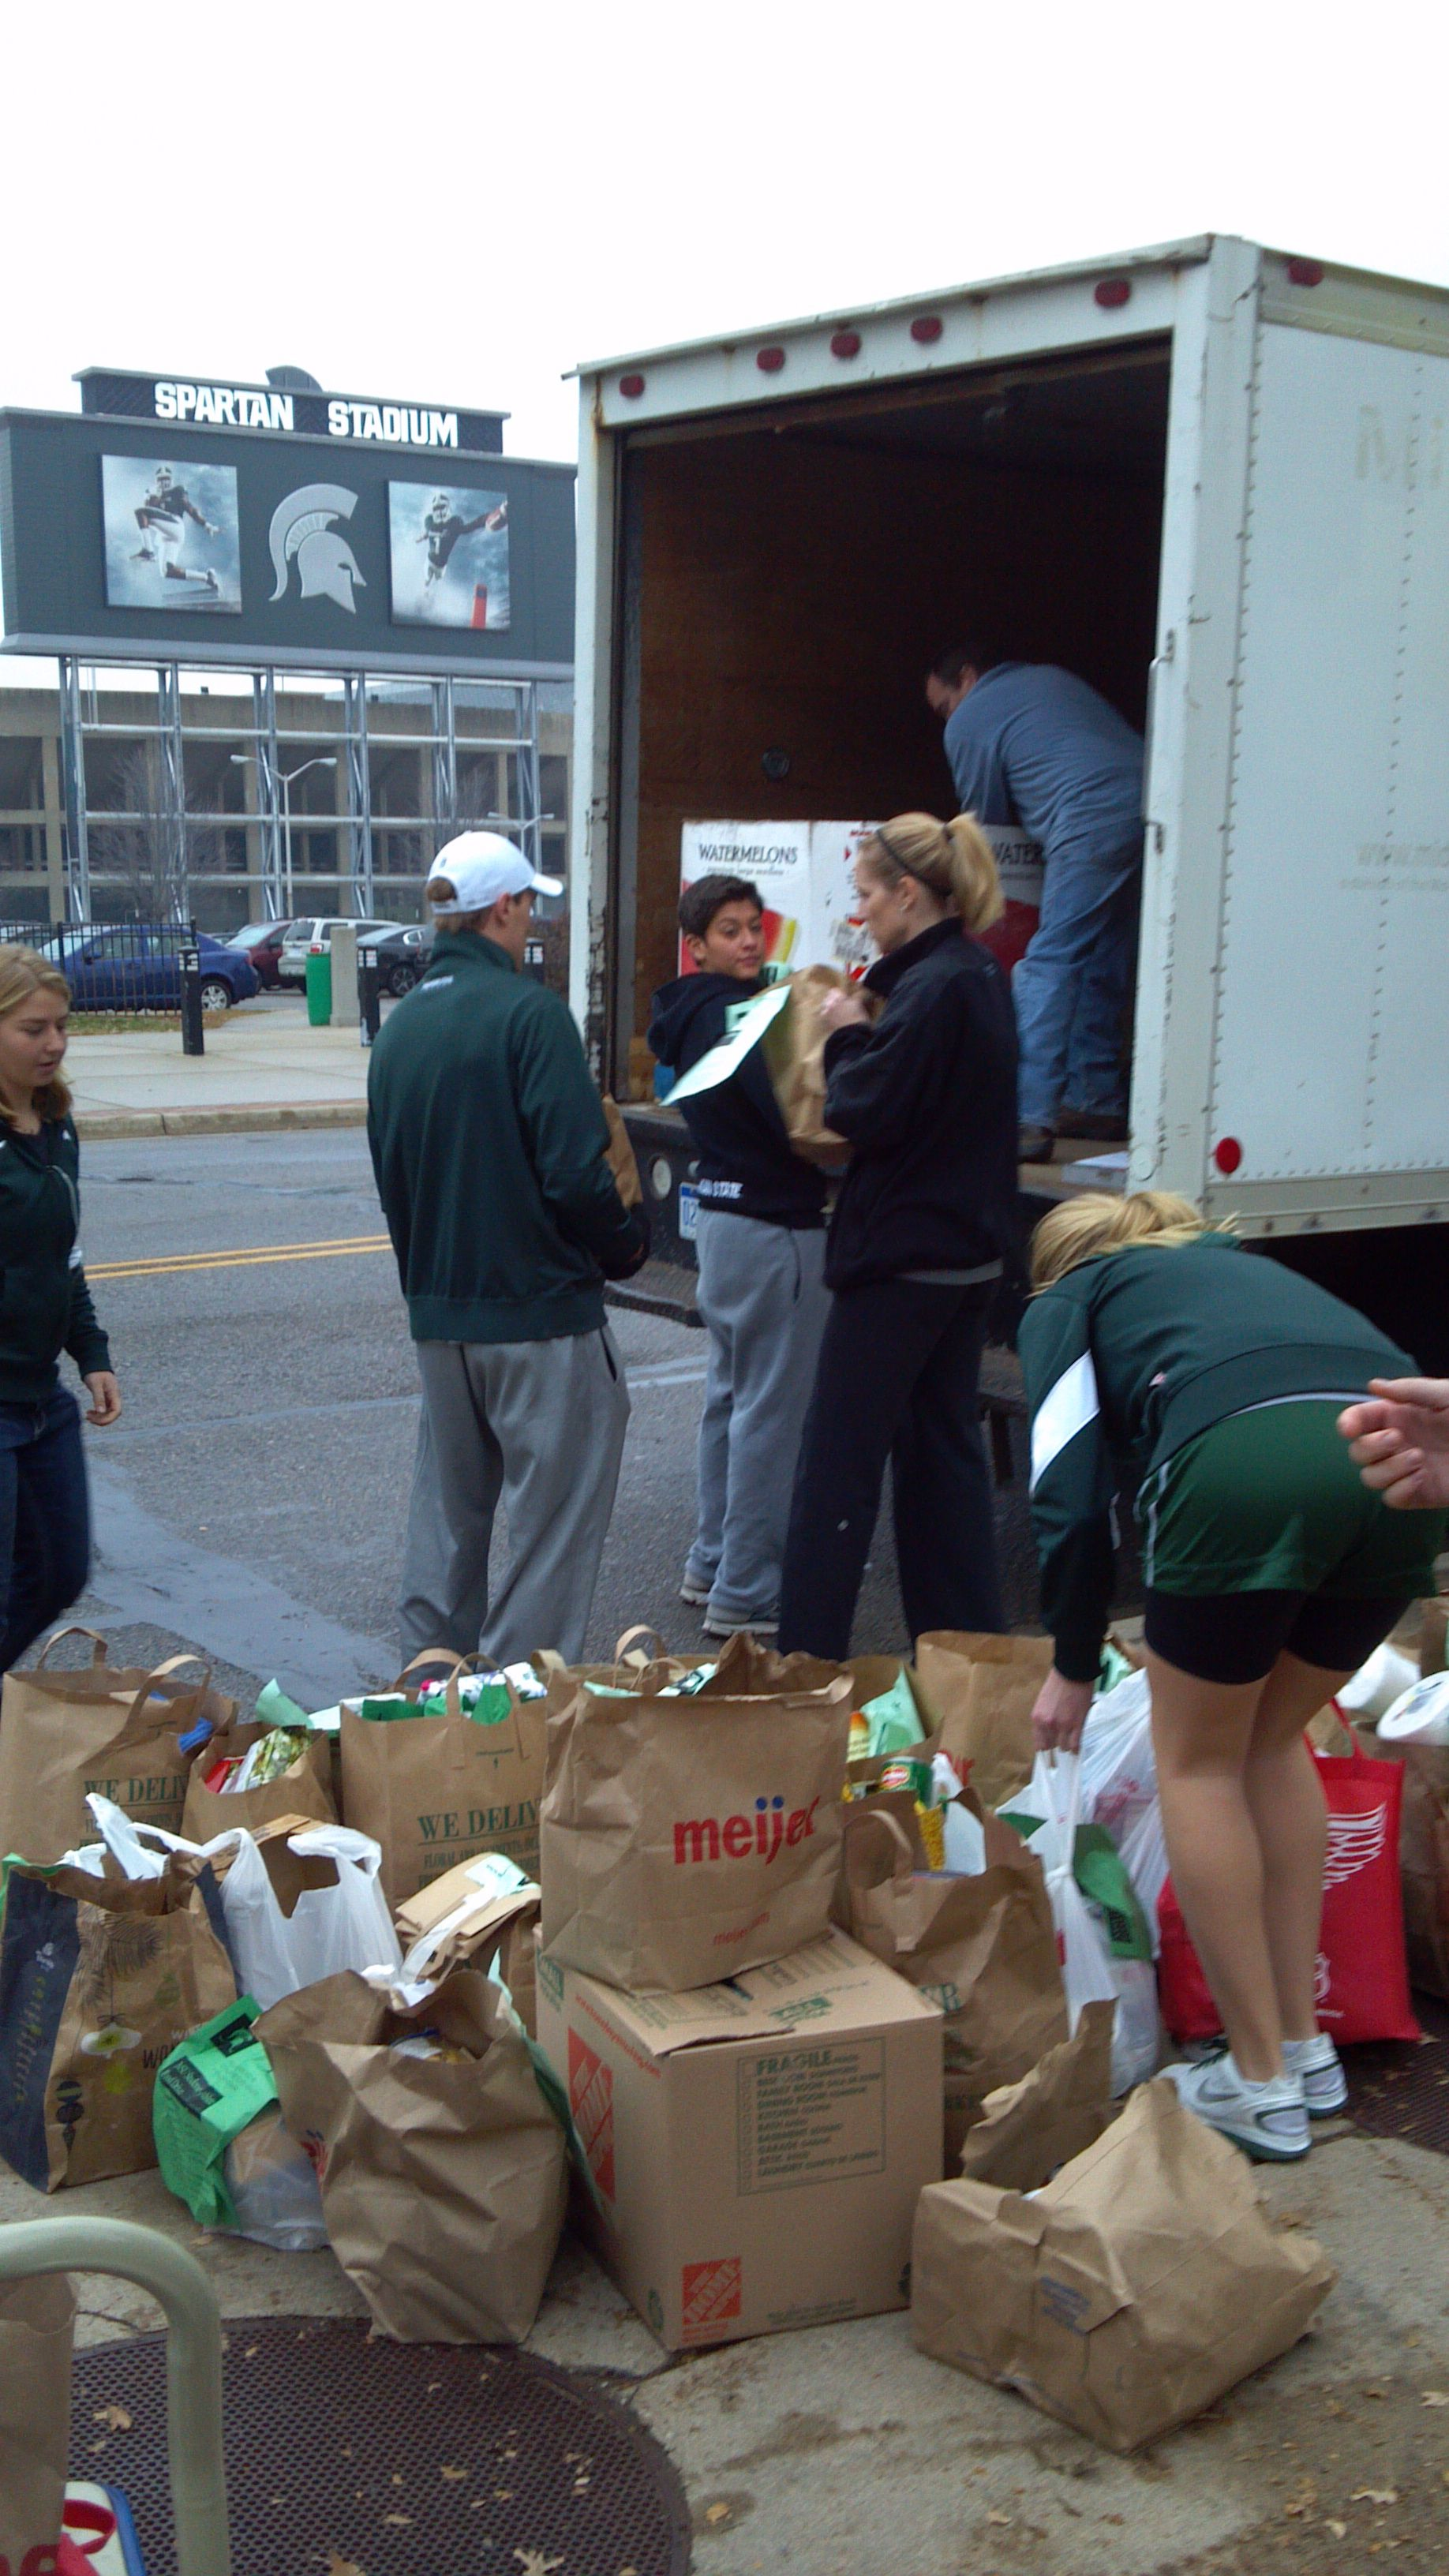 MSU #Spartans Student-Athlete Food Drive 2012! All donations were collected for the Greater Lansing Food Bank. #athletefood